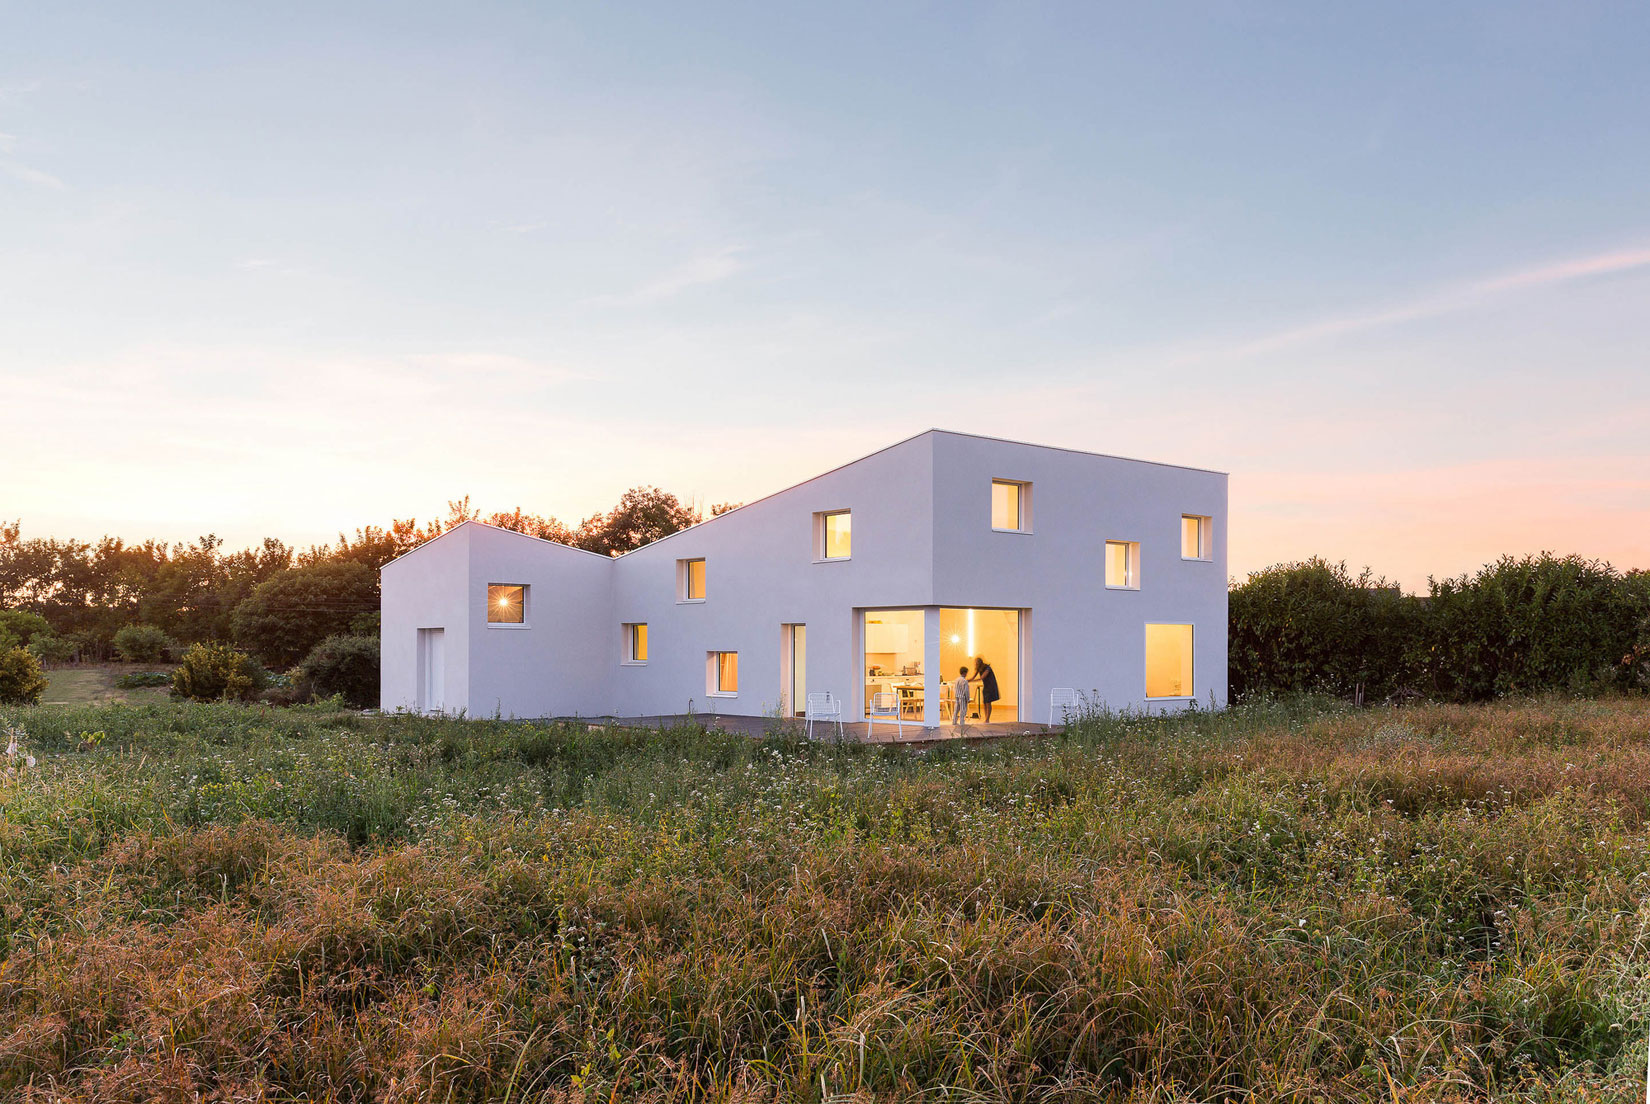 Studio Razavi Architecture Designs a Residence to Serve as Summer Home and Studio for a Photographer